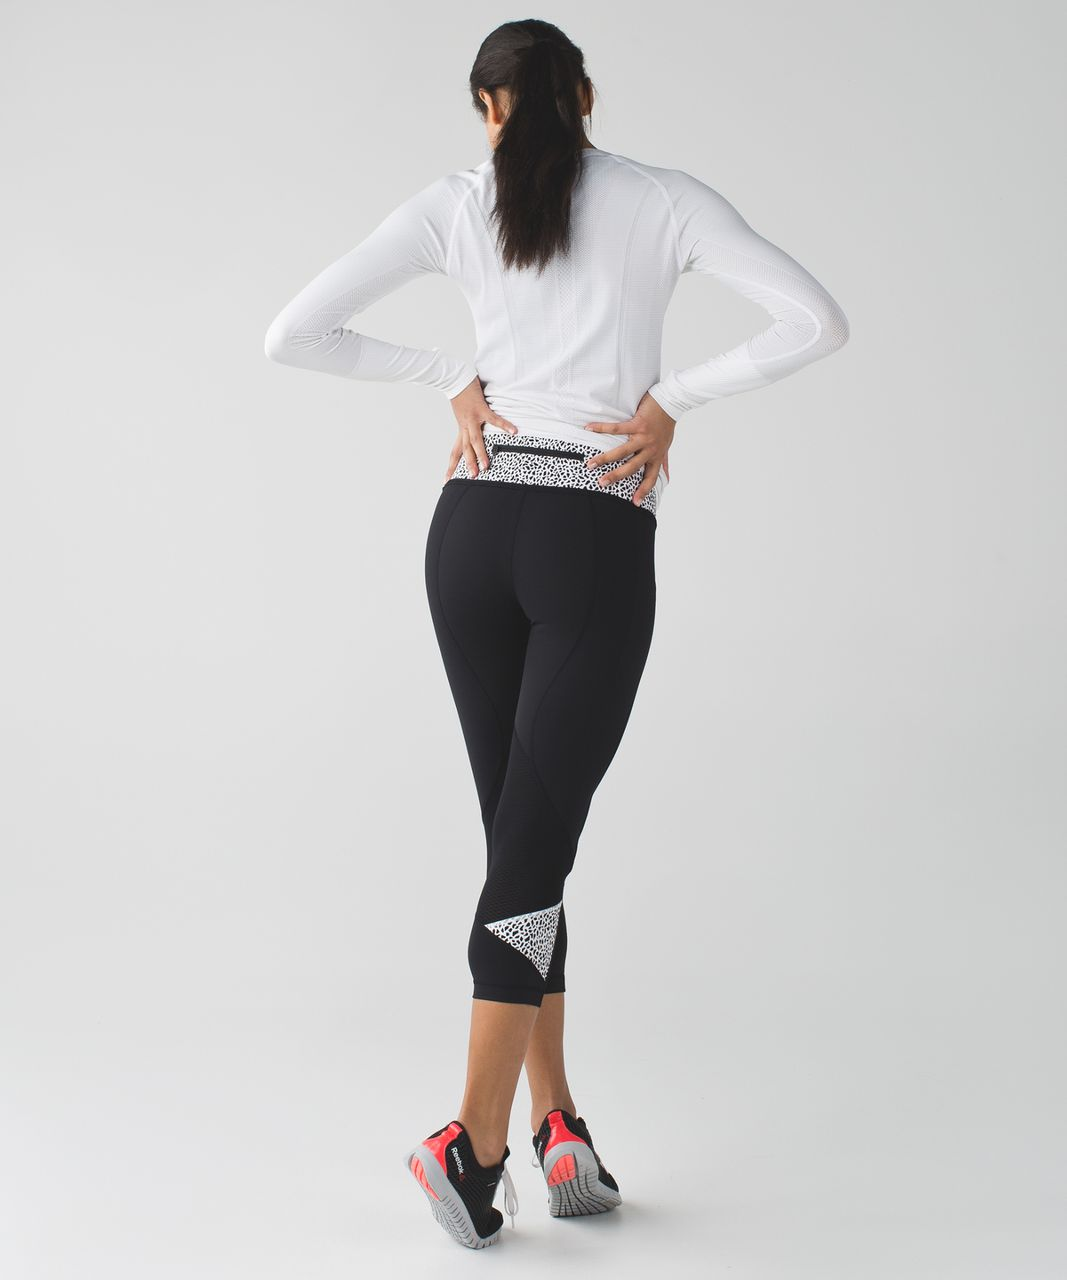 Lululemon Pace Rival Crop - Black / Miss Mosaic Black